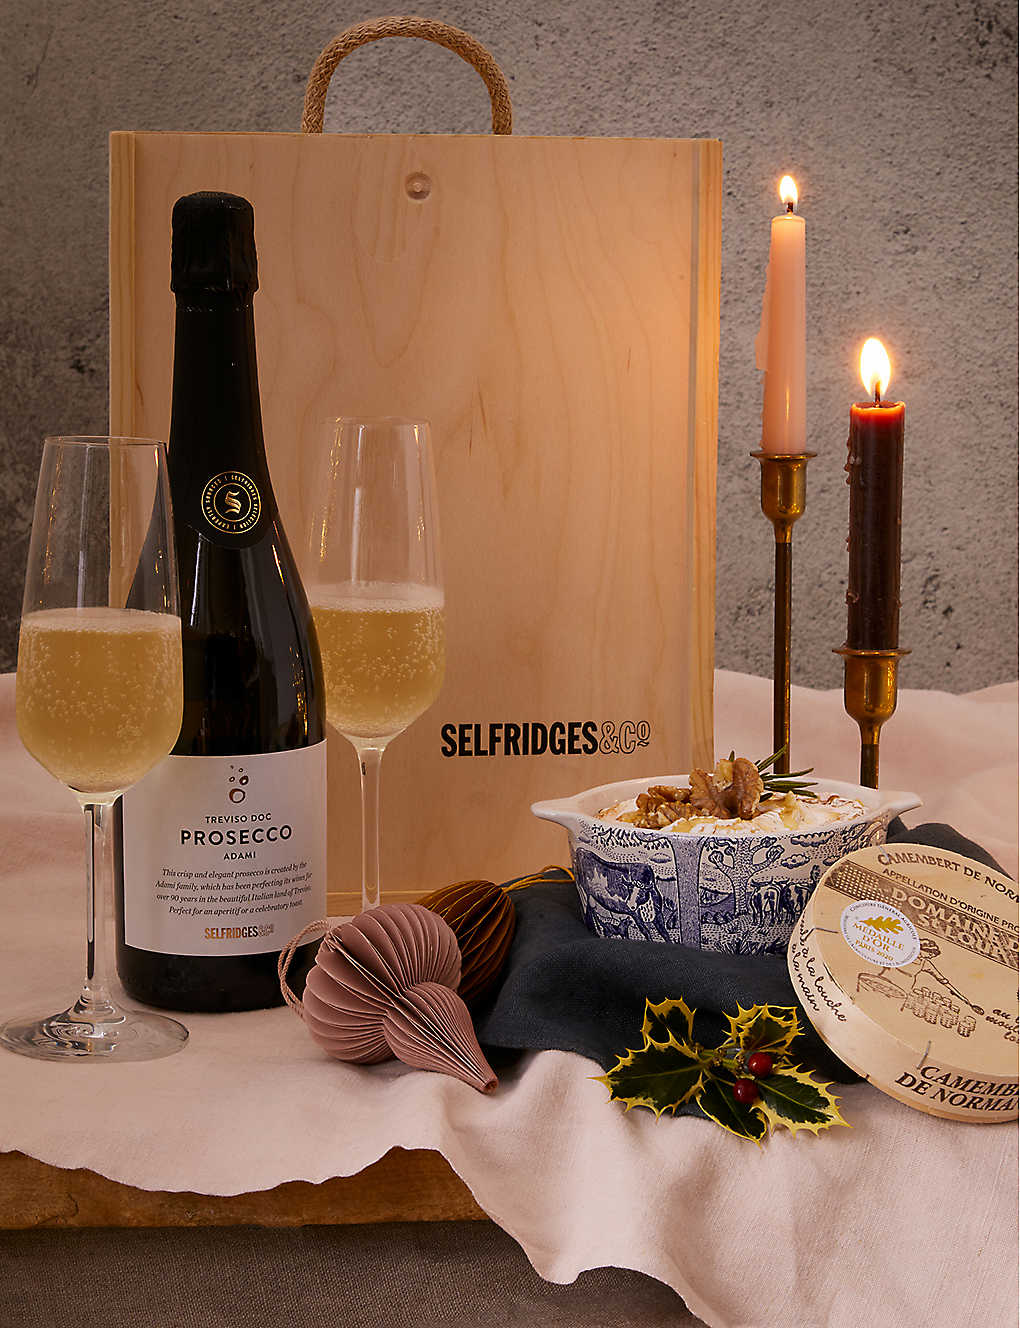 SELFRIDGES SELECTION: Baked Camembert Prosecco gift box